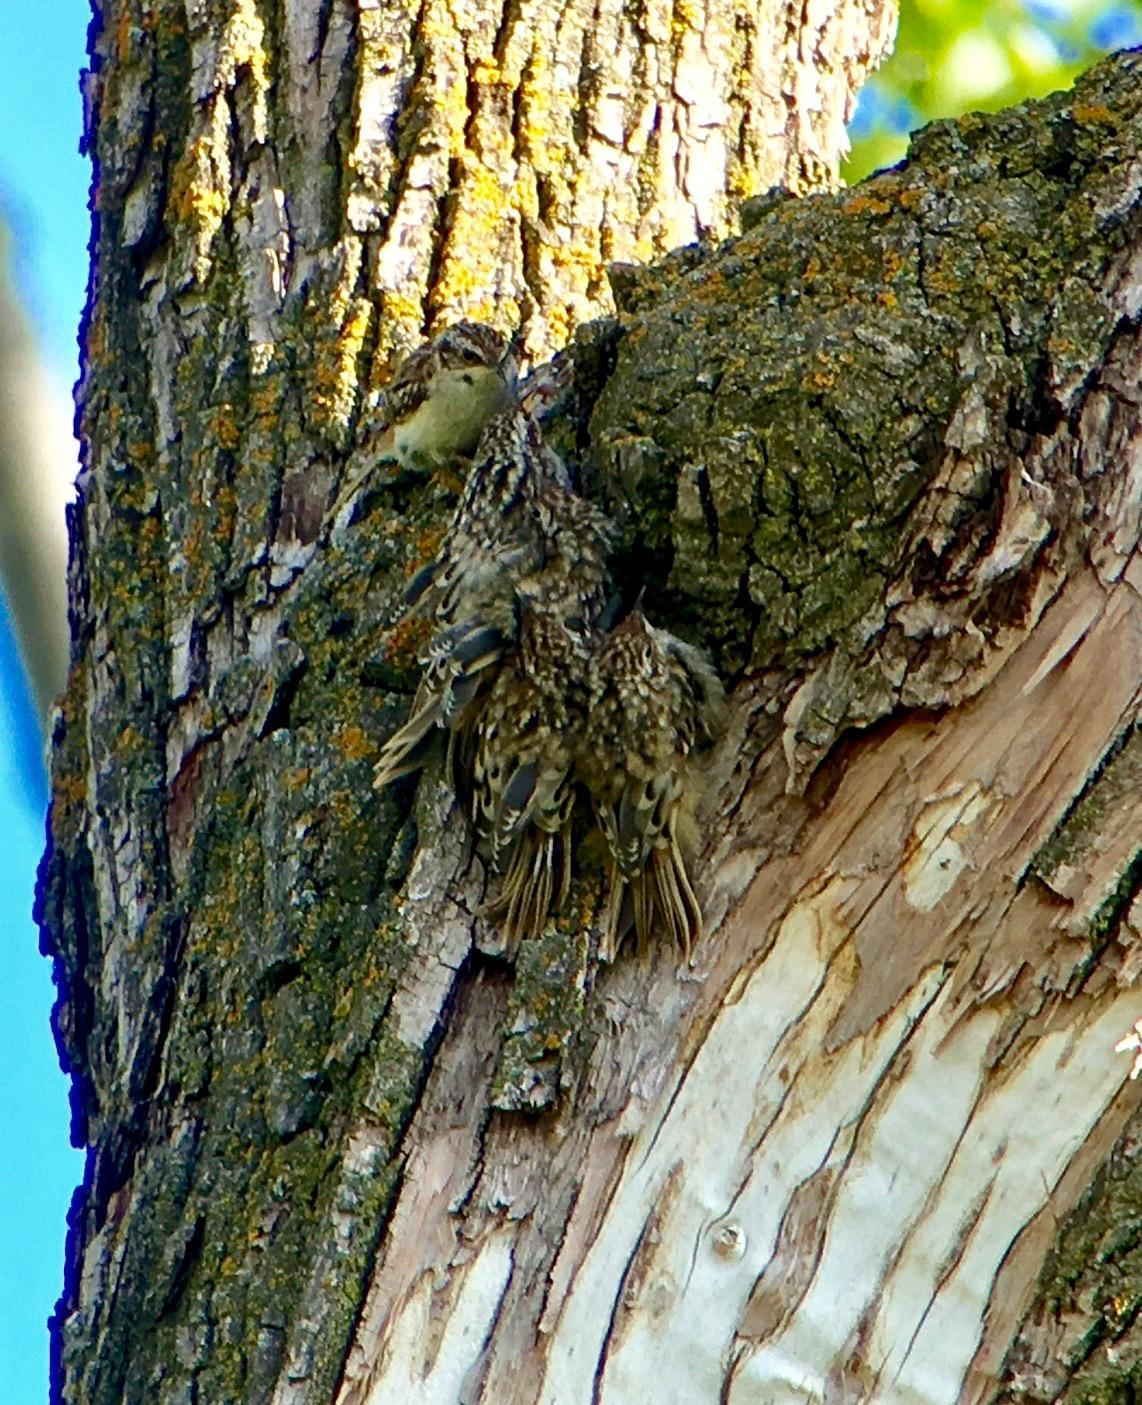 Brown Creeper Photo by Don Glasco